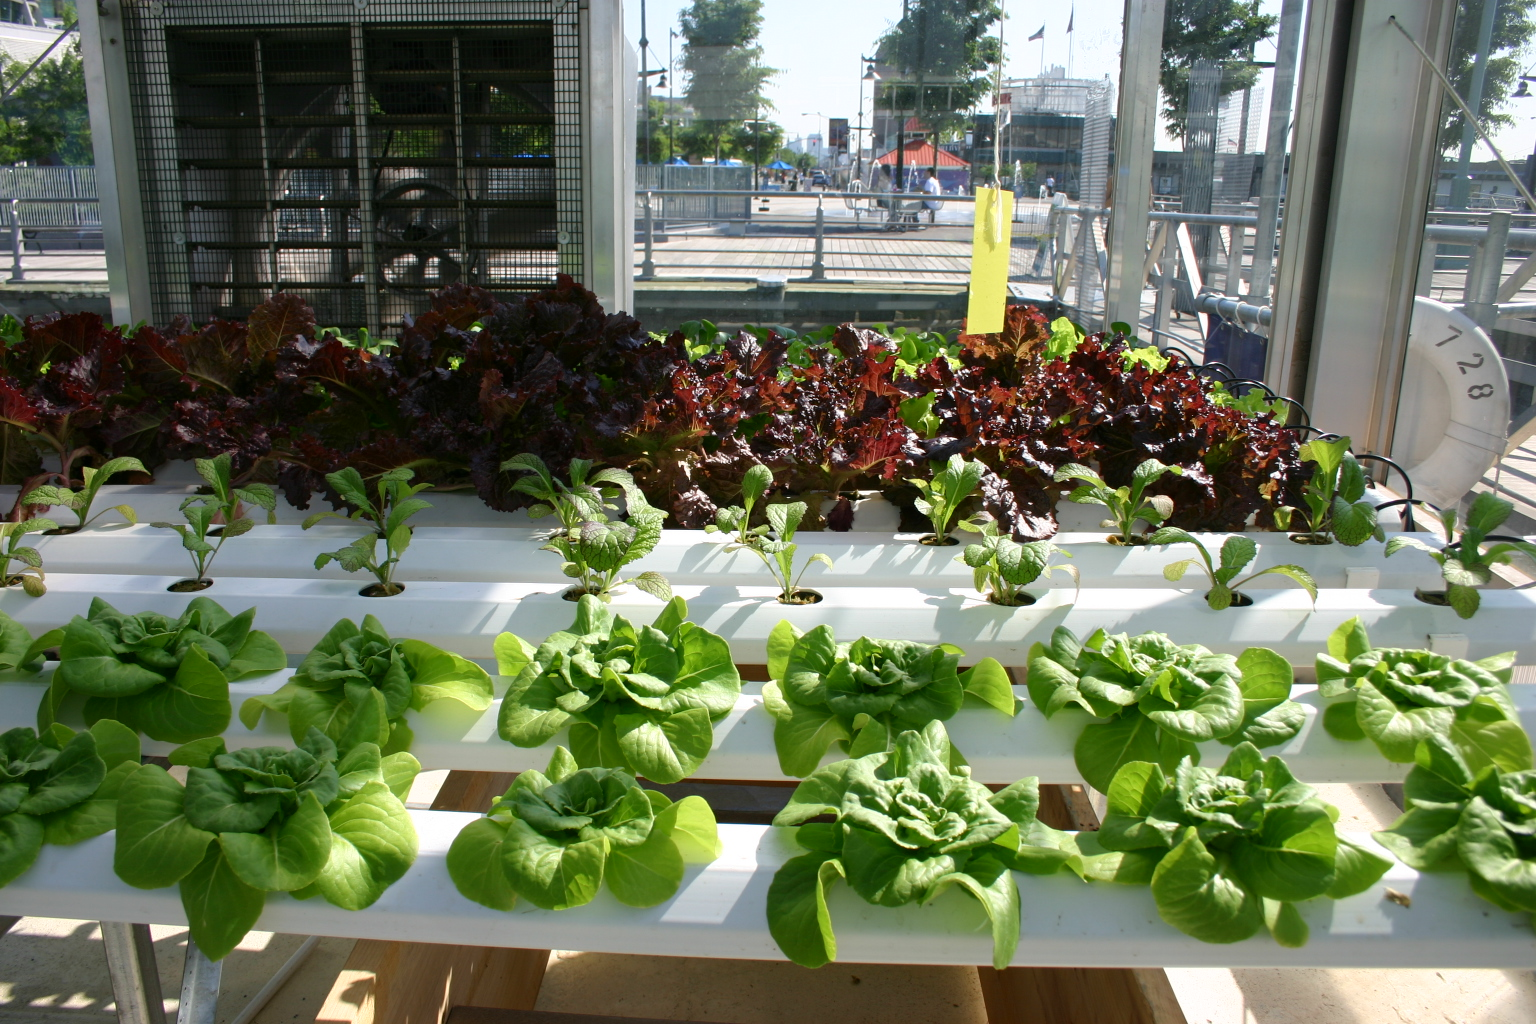 The Benefits of Hydroponics